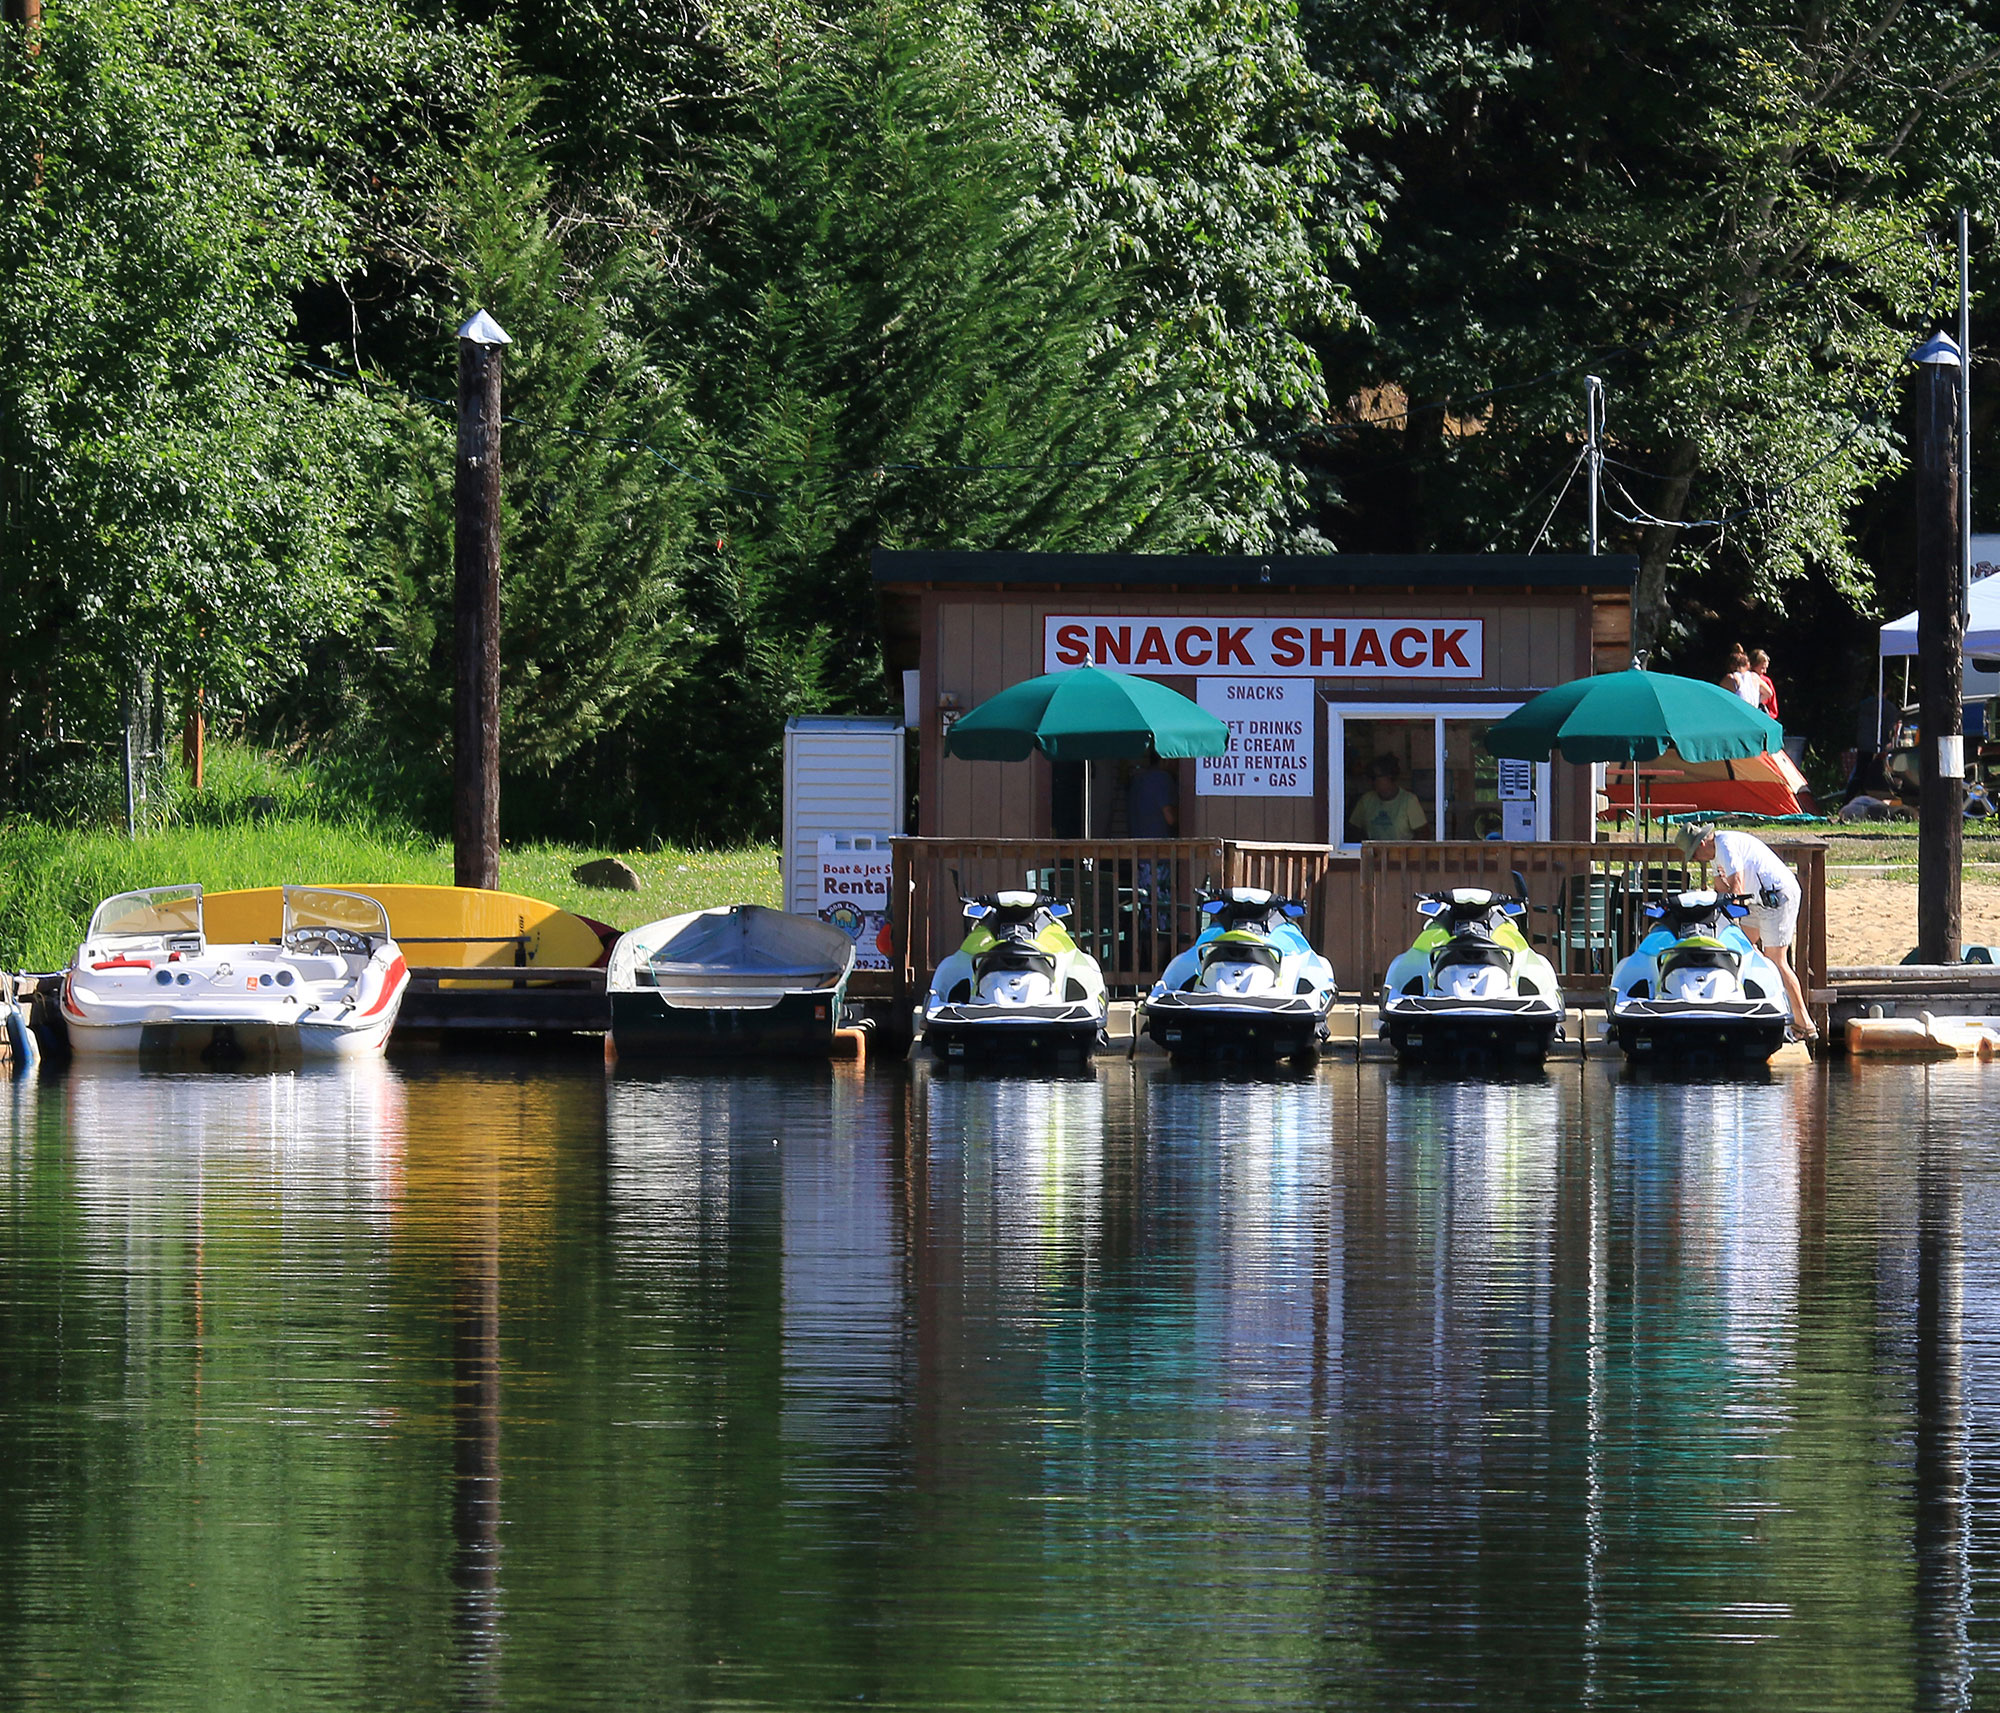 Loon Lake Watersports and Marina, LLC